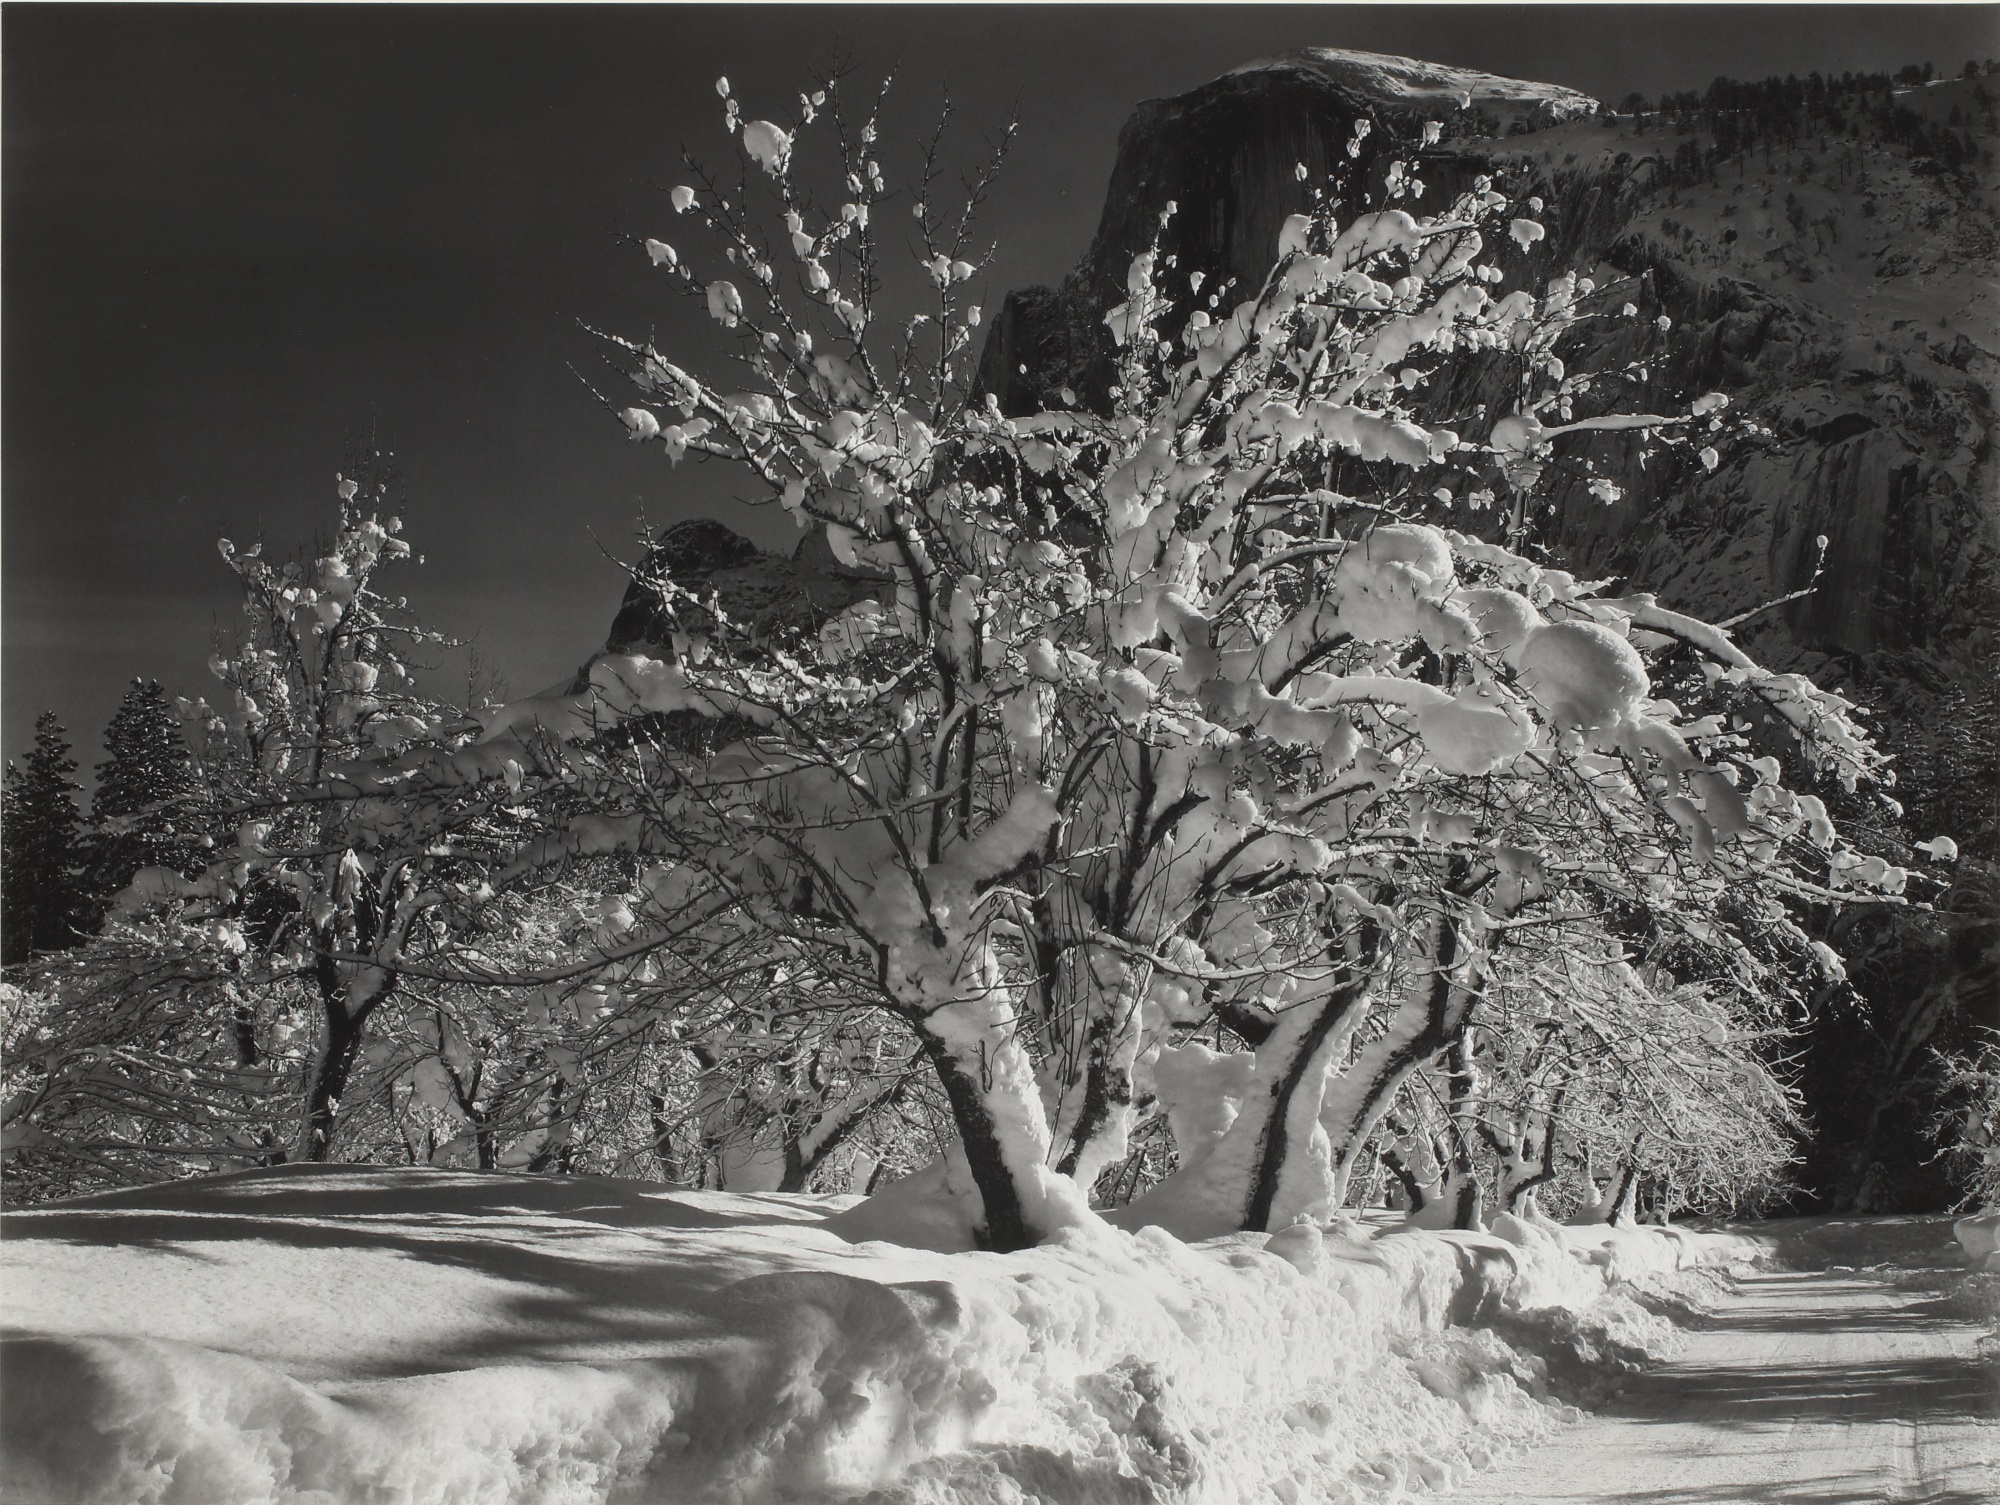 Ansel Adams-Half Dome, Orchard, Winter, Yosemite National Park, Cal.-1932